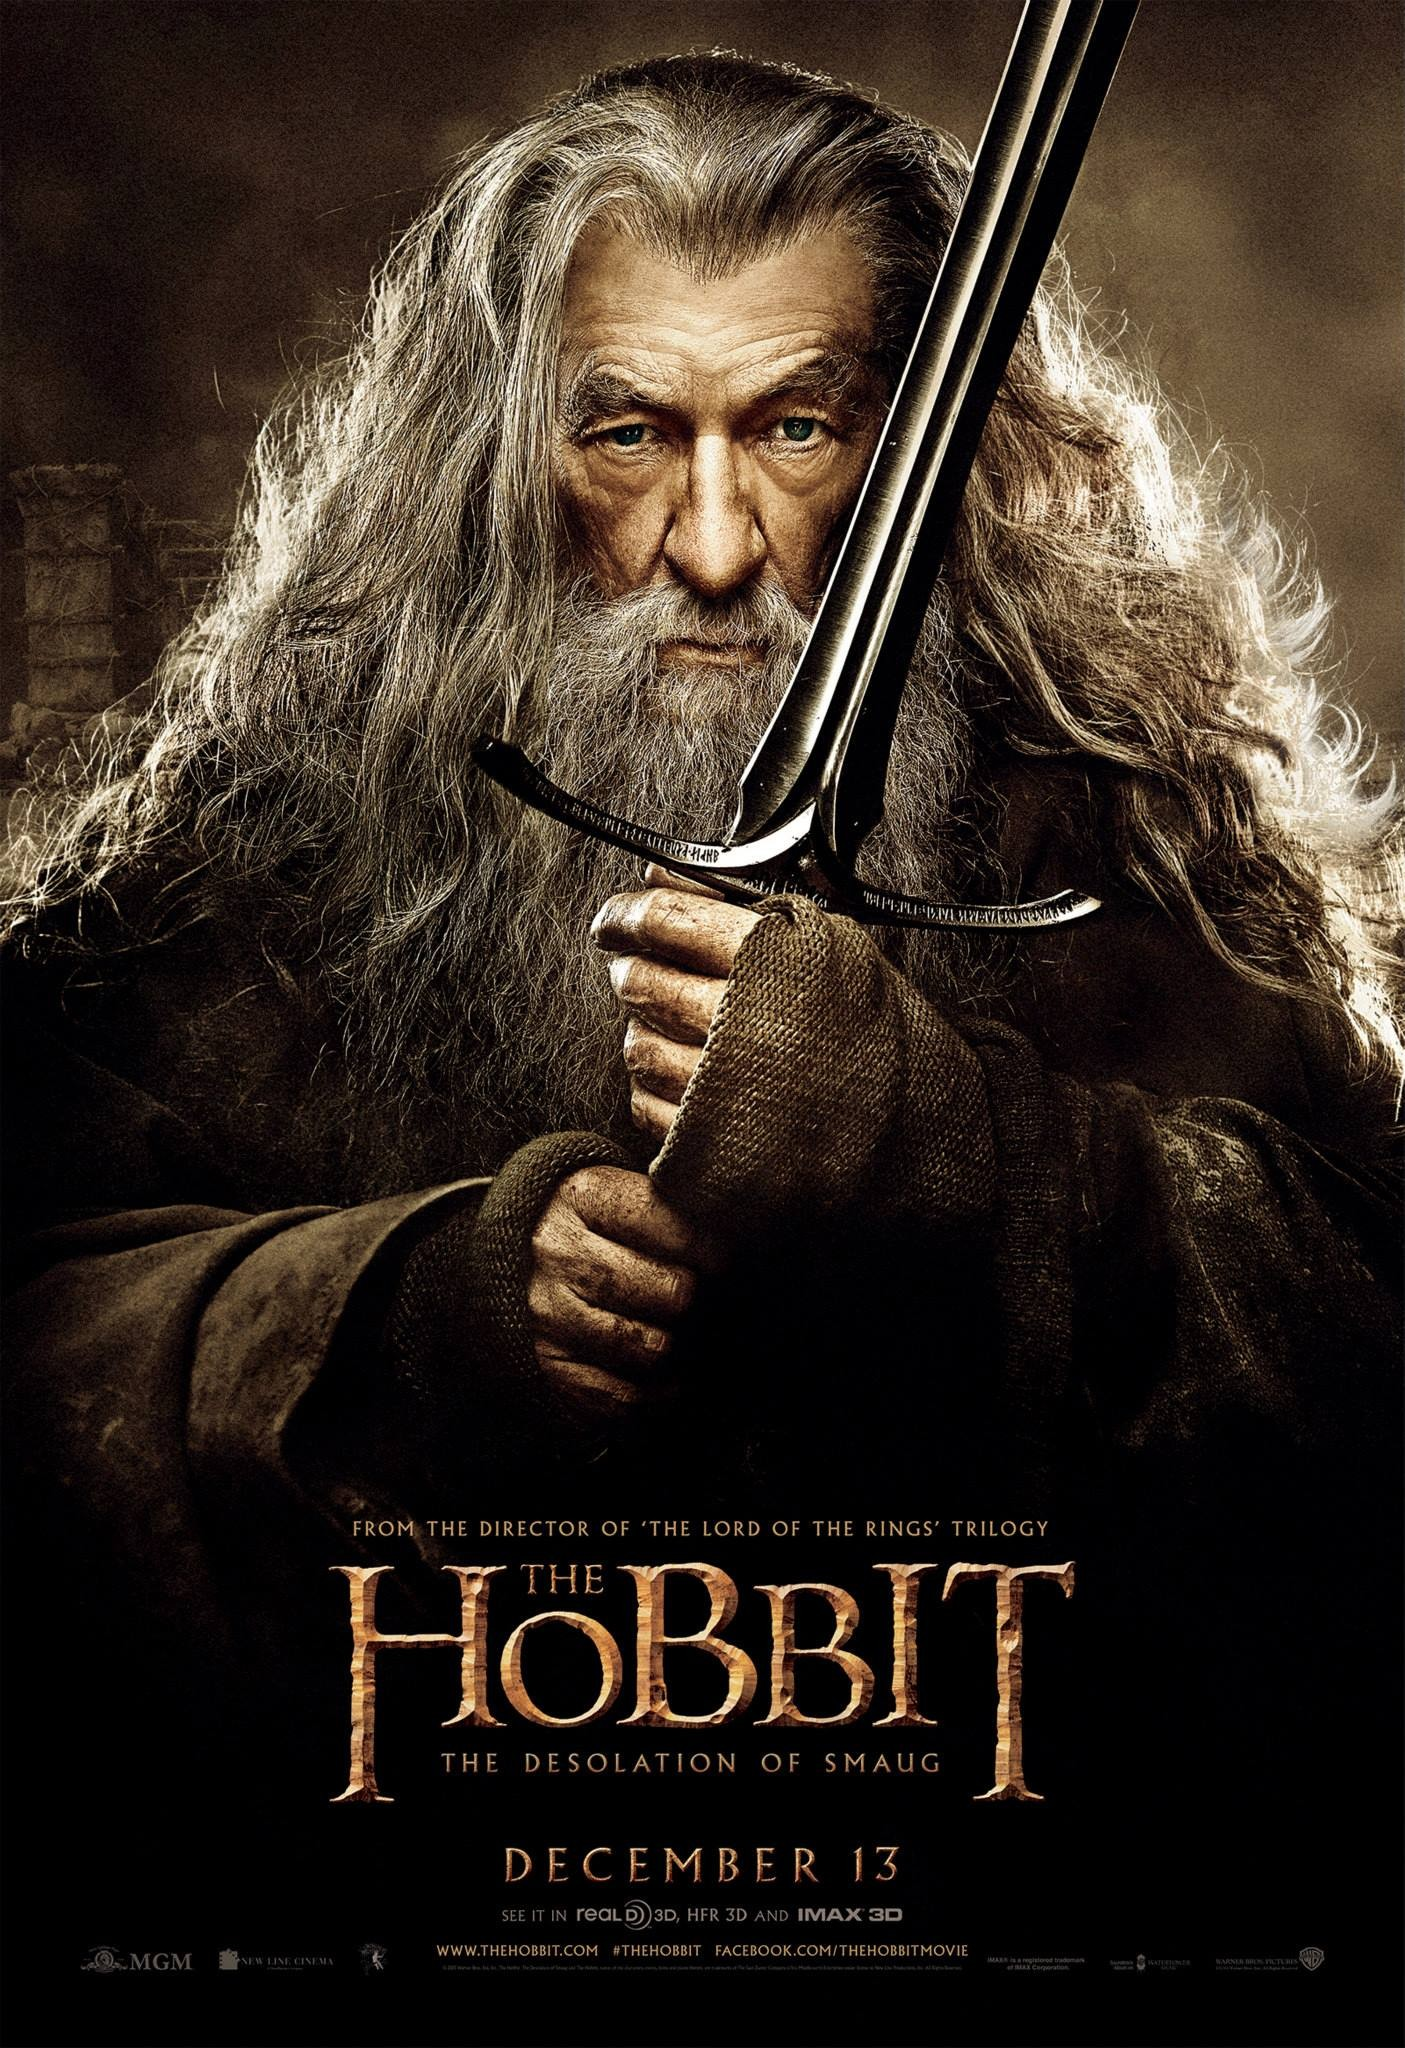 The Hobbit The Desolation of Smaug-Official Poster Banner PROMO POSTER XXLG-04NOVEMBRO2013-03